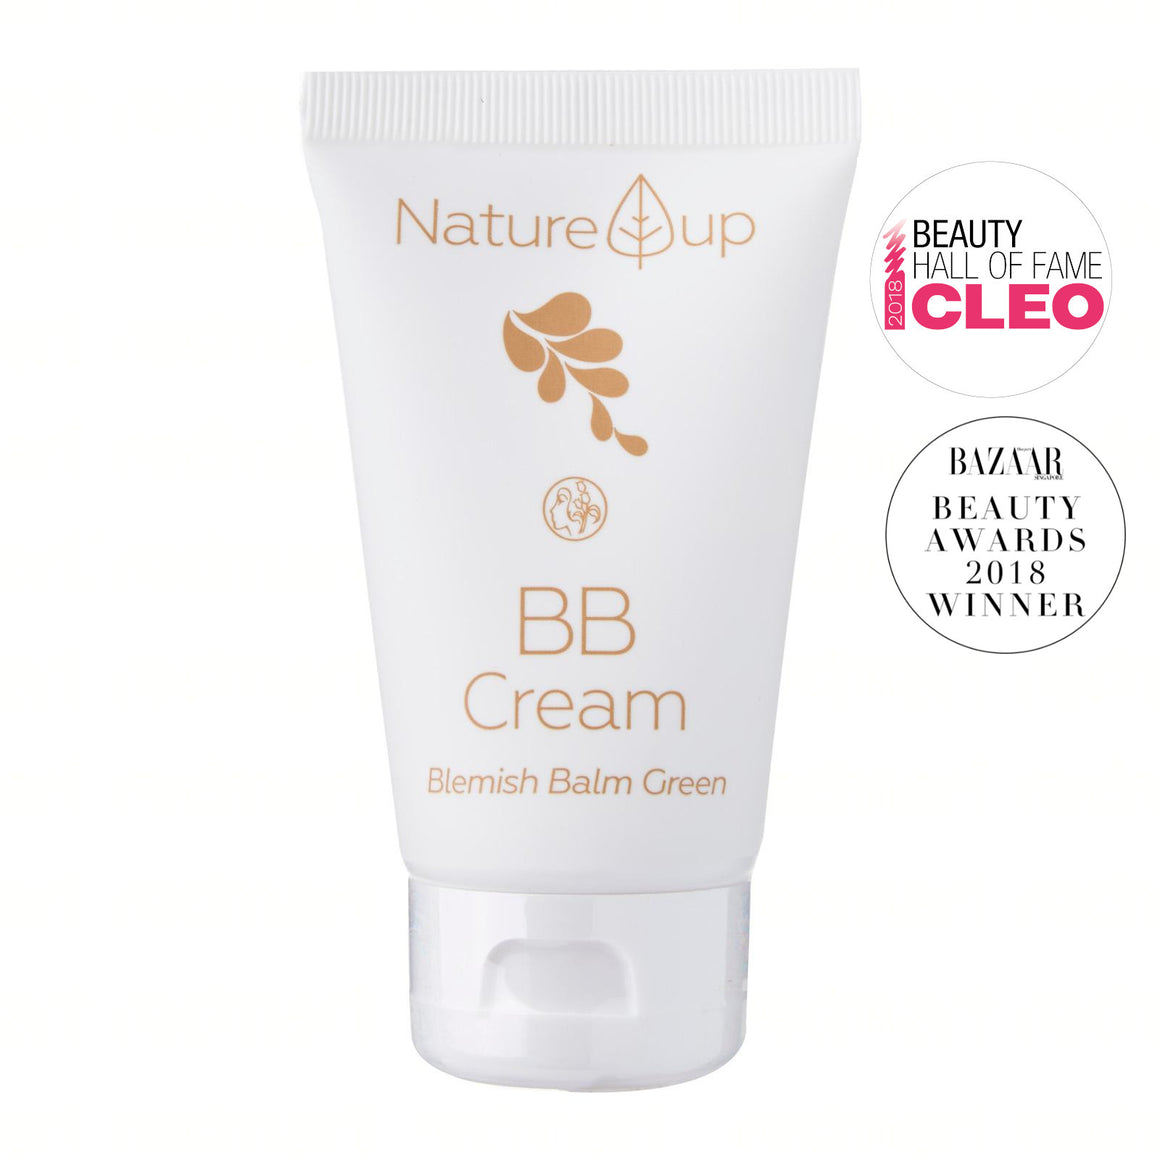 Nature Up BB Cream